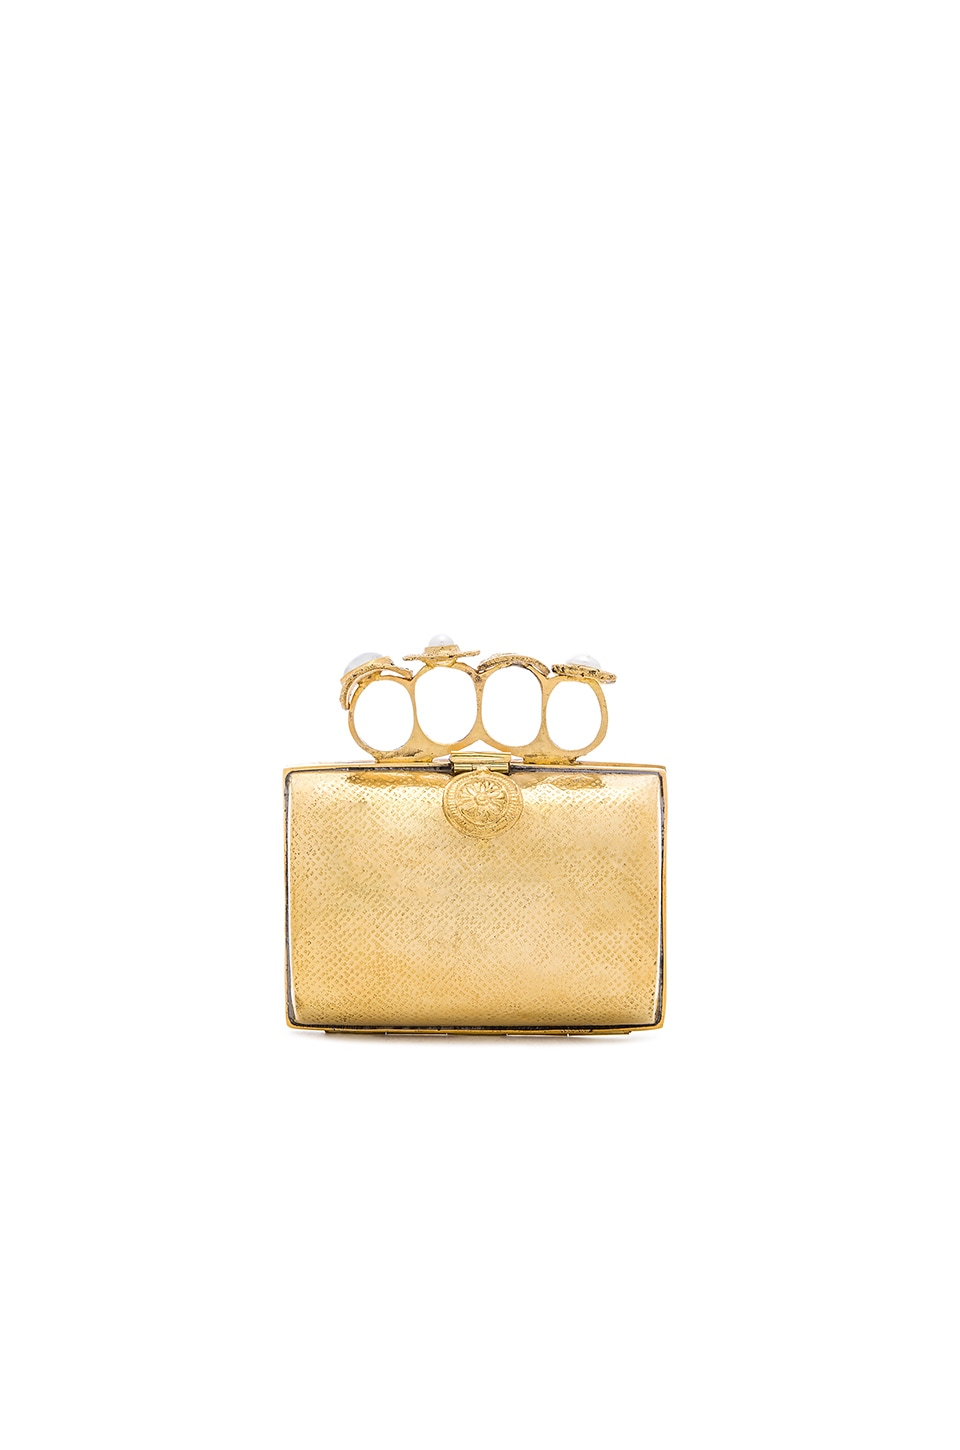 From St Xavier Bella Clutch in Gold & Pearl